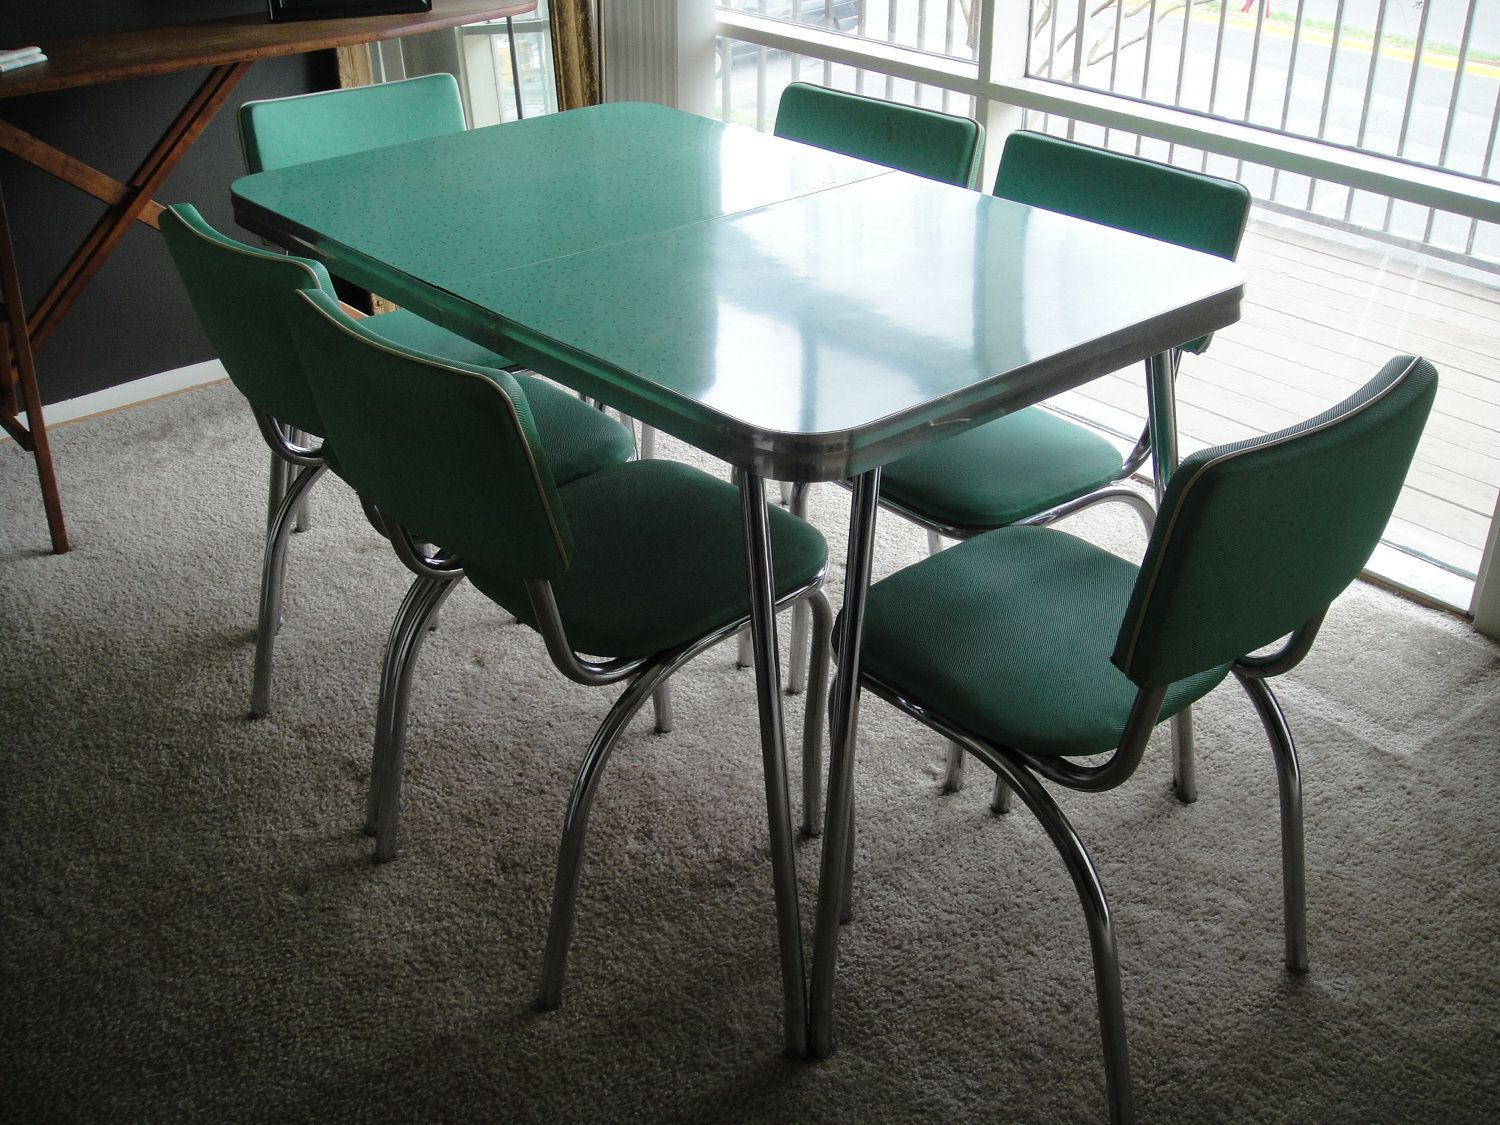 kitchen tables and chairs RESERVED s Kitchen Table and Chairs Mint Dining Set with Six Chairs Formica with Chrome Legs and Details PICK UP ONLy